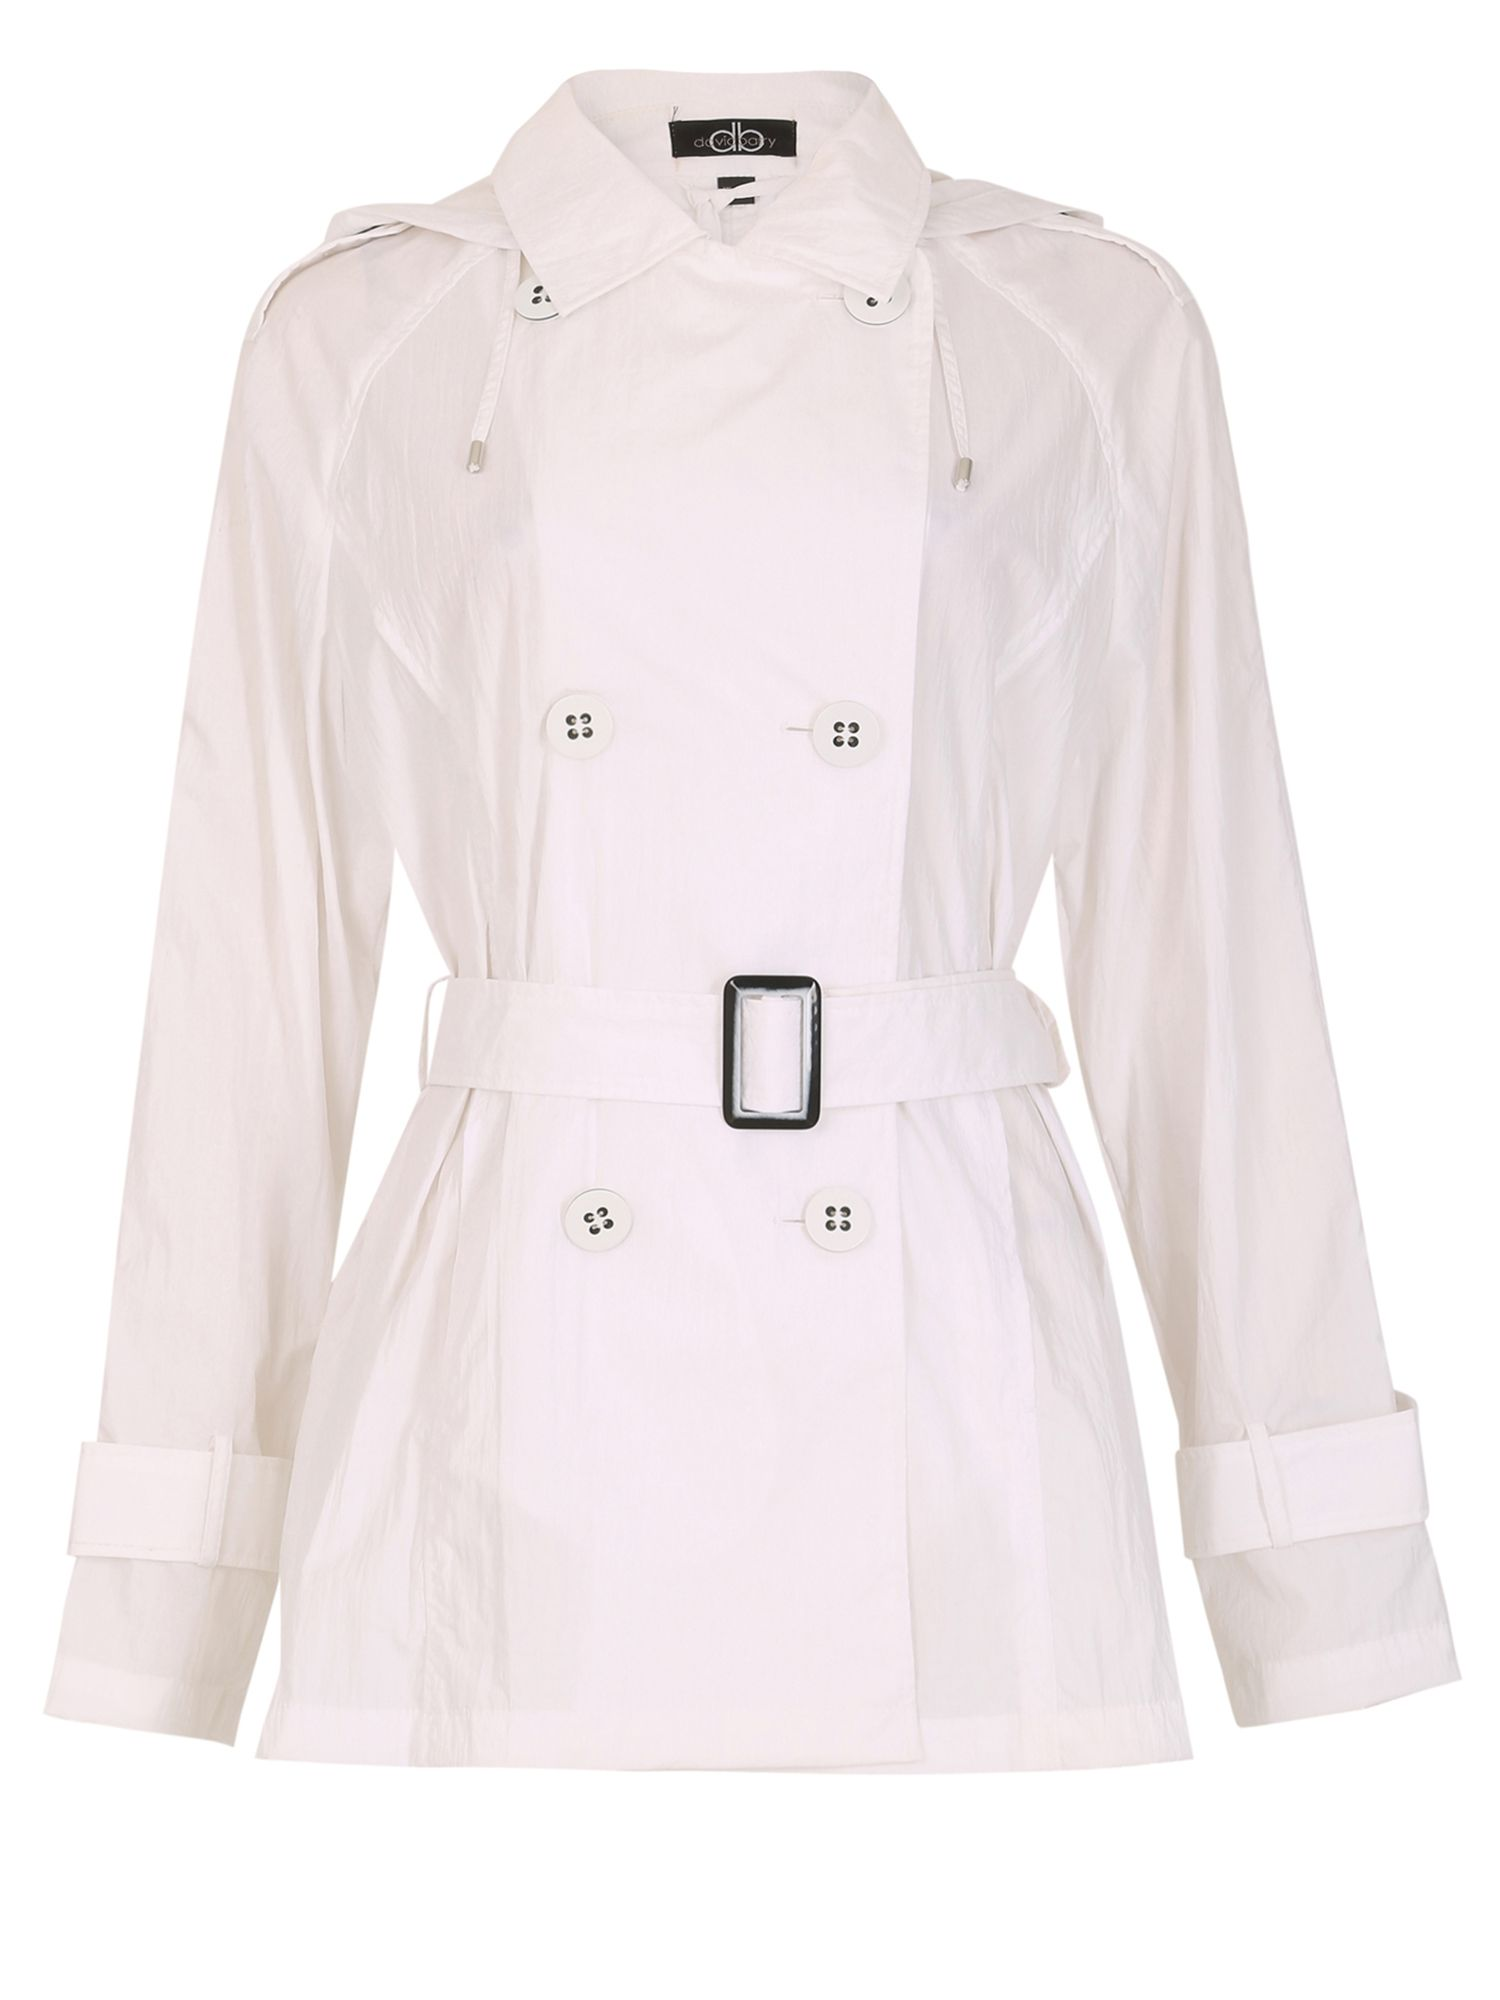 David Barry Memory Fabric Trench Rain Jacket, White